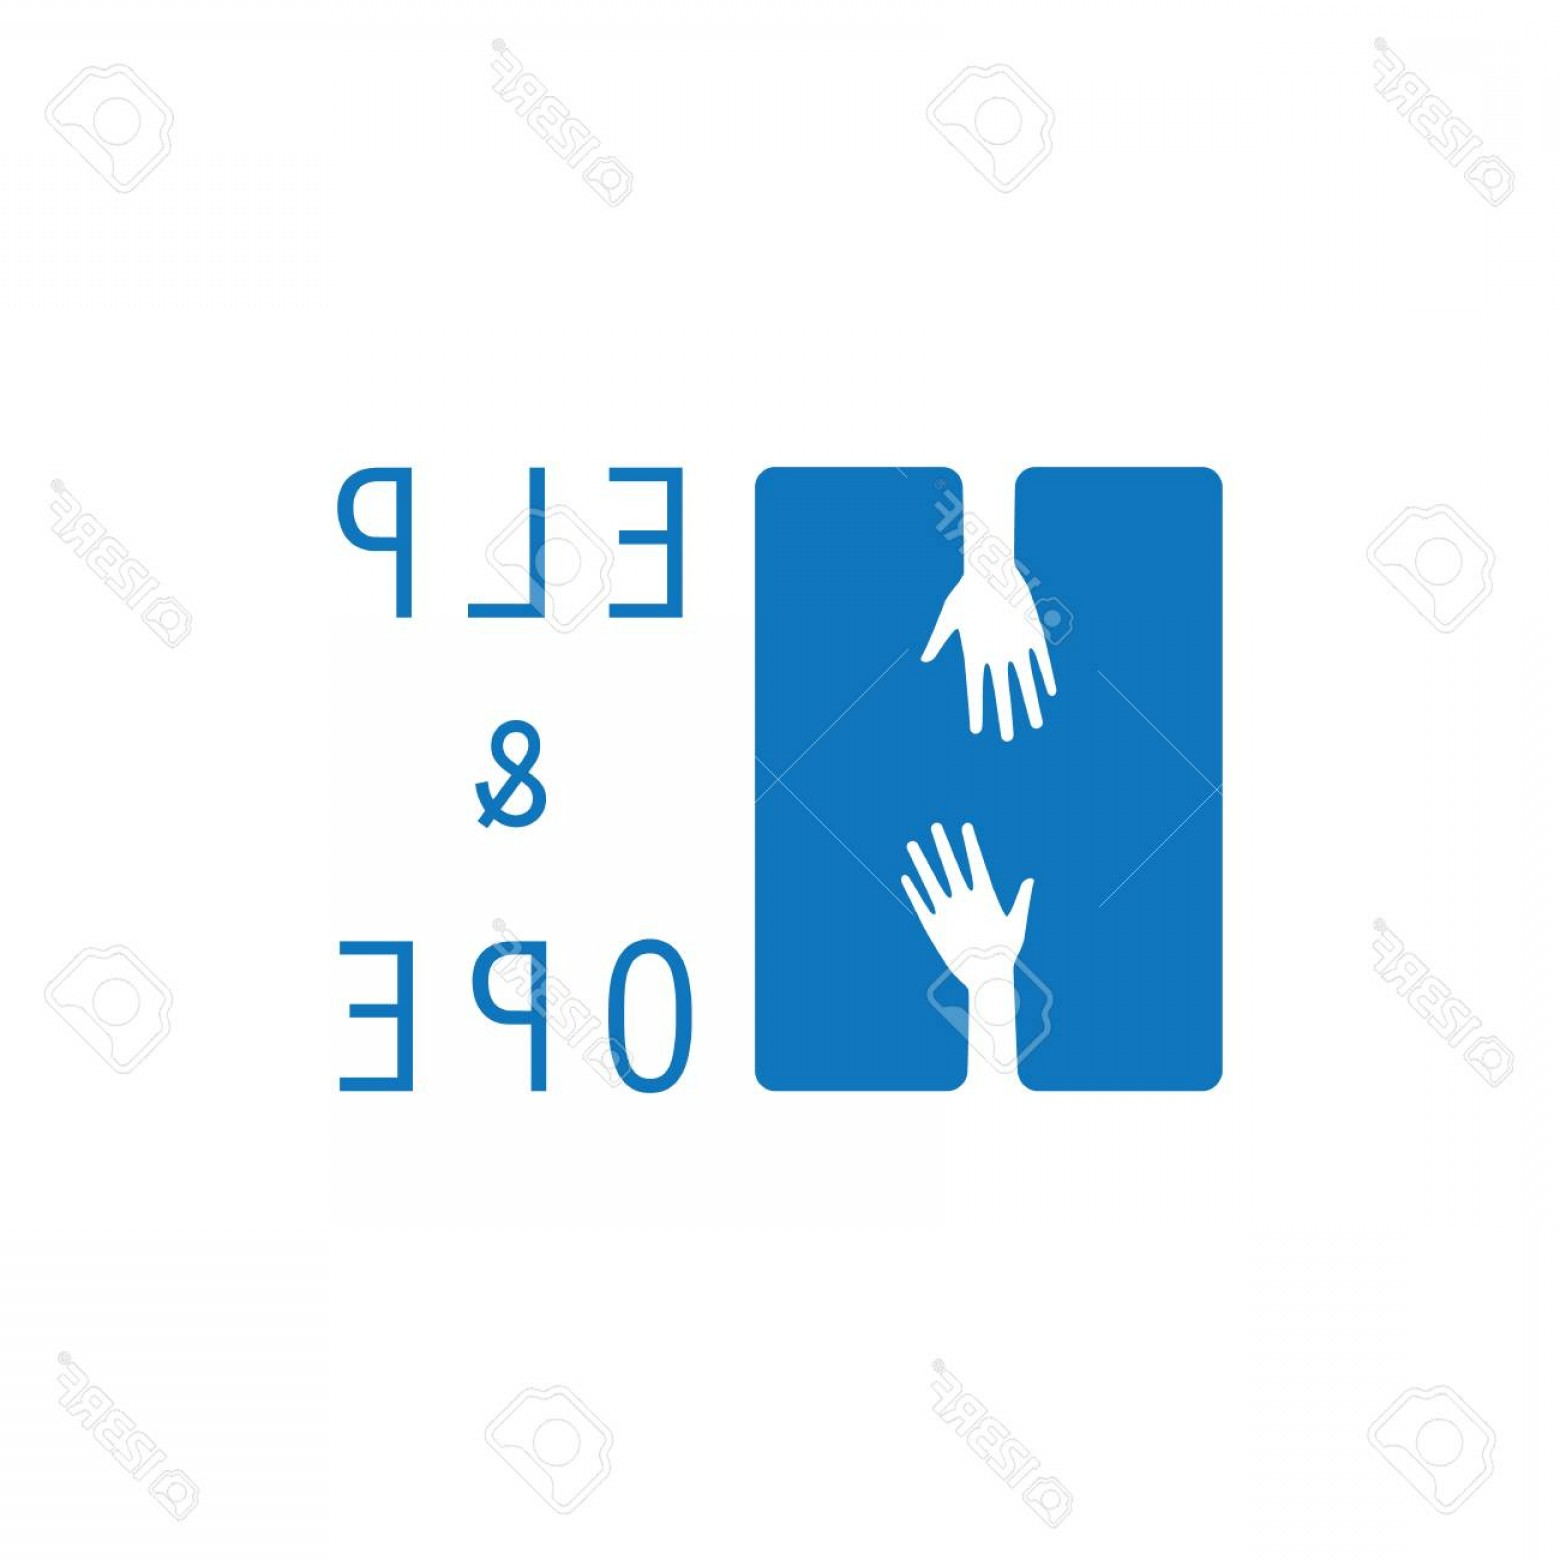 Support Vector Graphics: Photostock Vector Hands Reaching For Help Support And Hope Icon Logo Vector Graphic Design